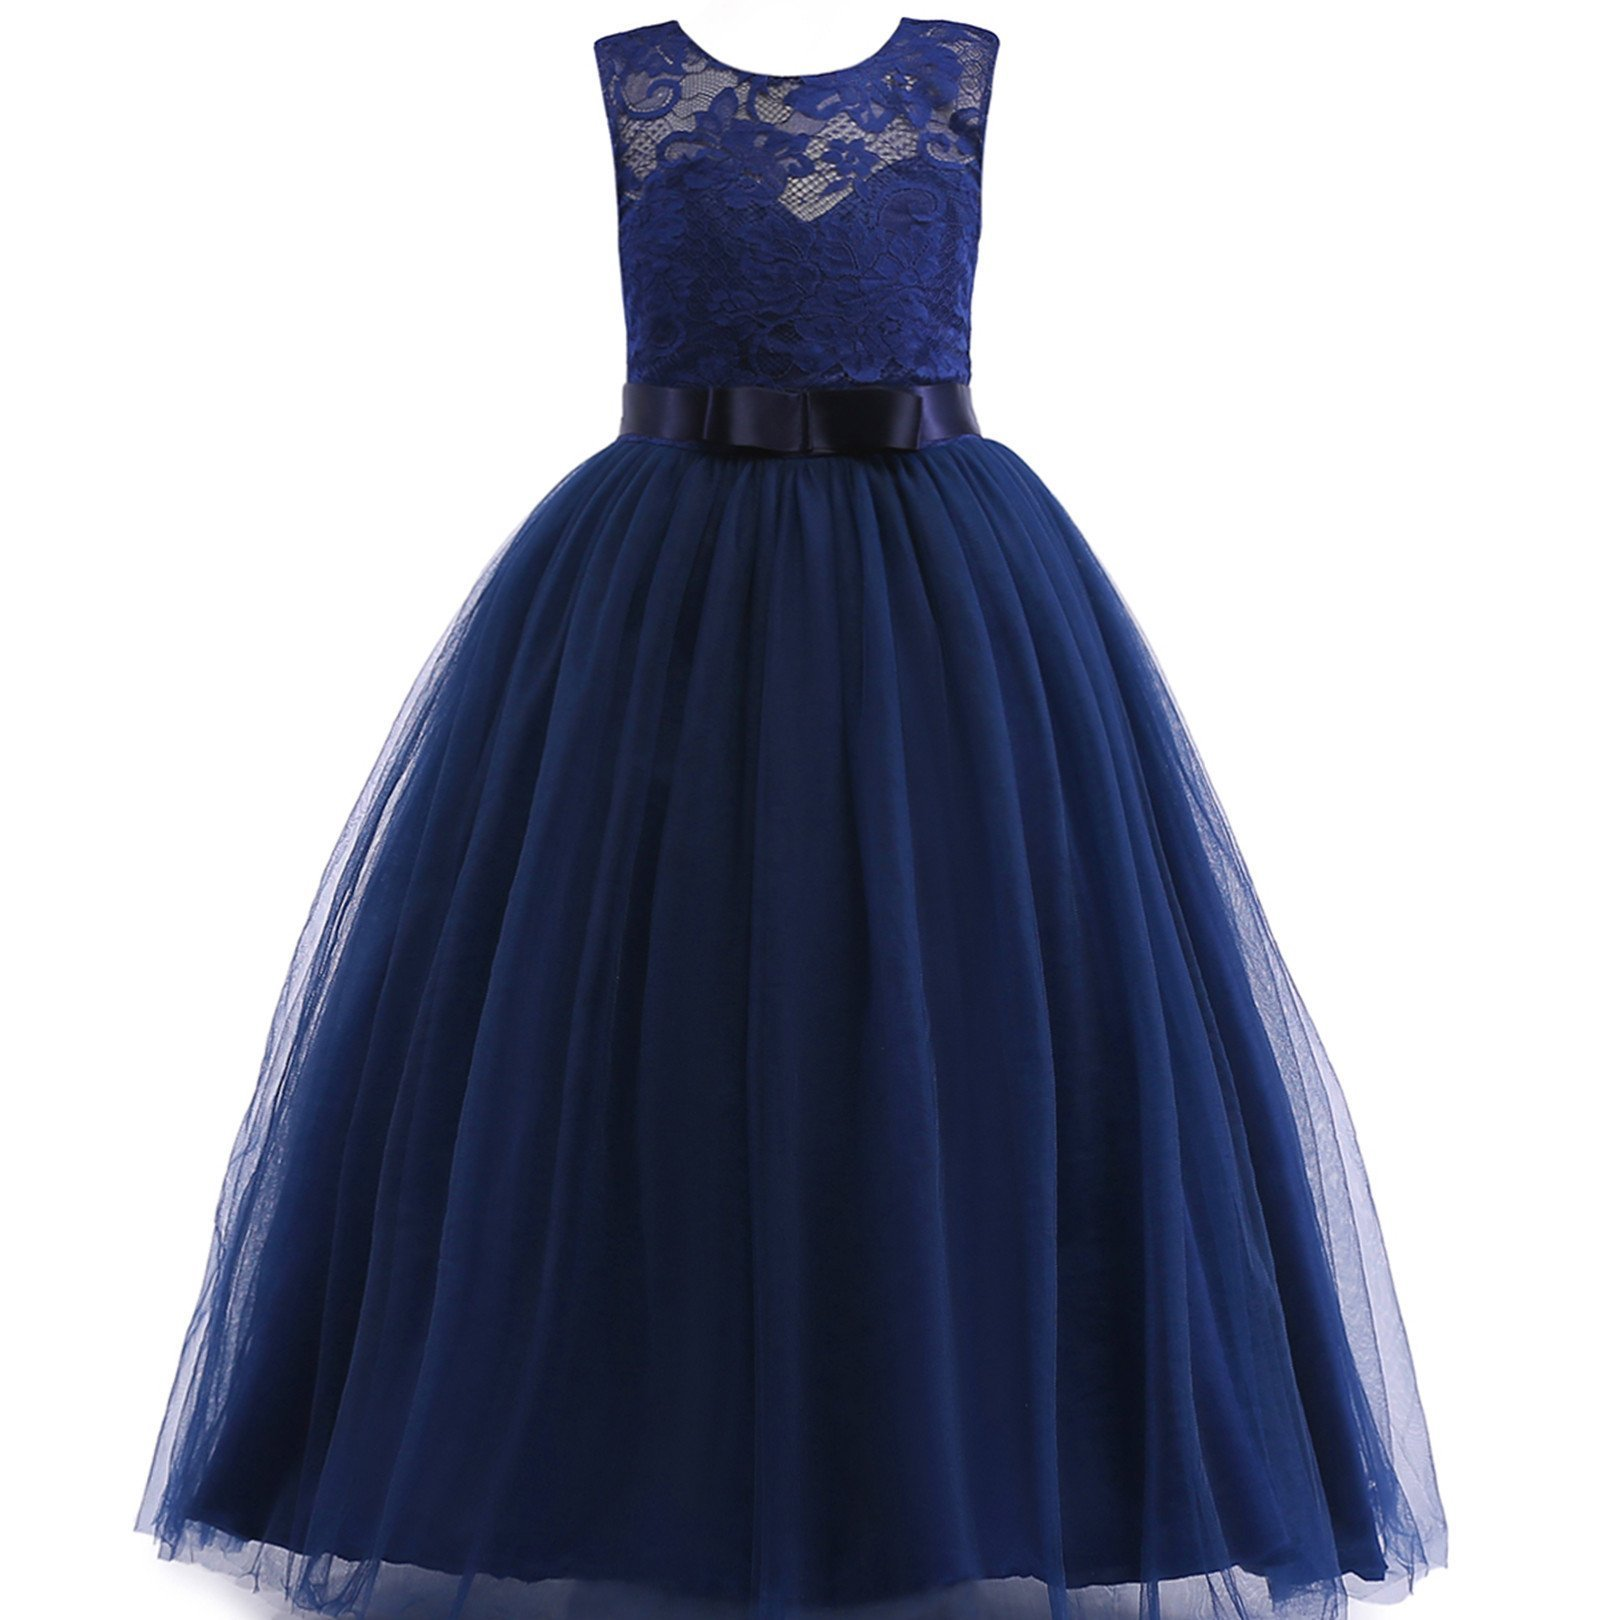 Glamulice Girls Lace Bridesmaid Dress Long A Line Wedding Pageant Dresses Tulle Party Gown Age 3 14y 11 12y O Navy Blue On Galleon Philippines,Formal Dress To Wear To Wedding